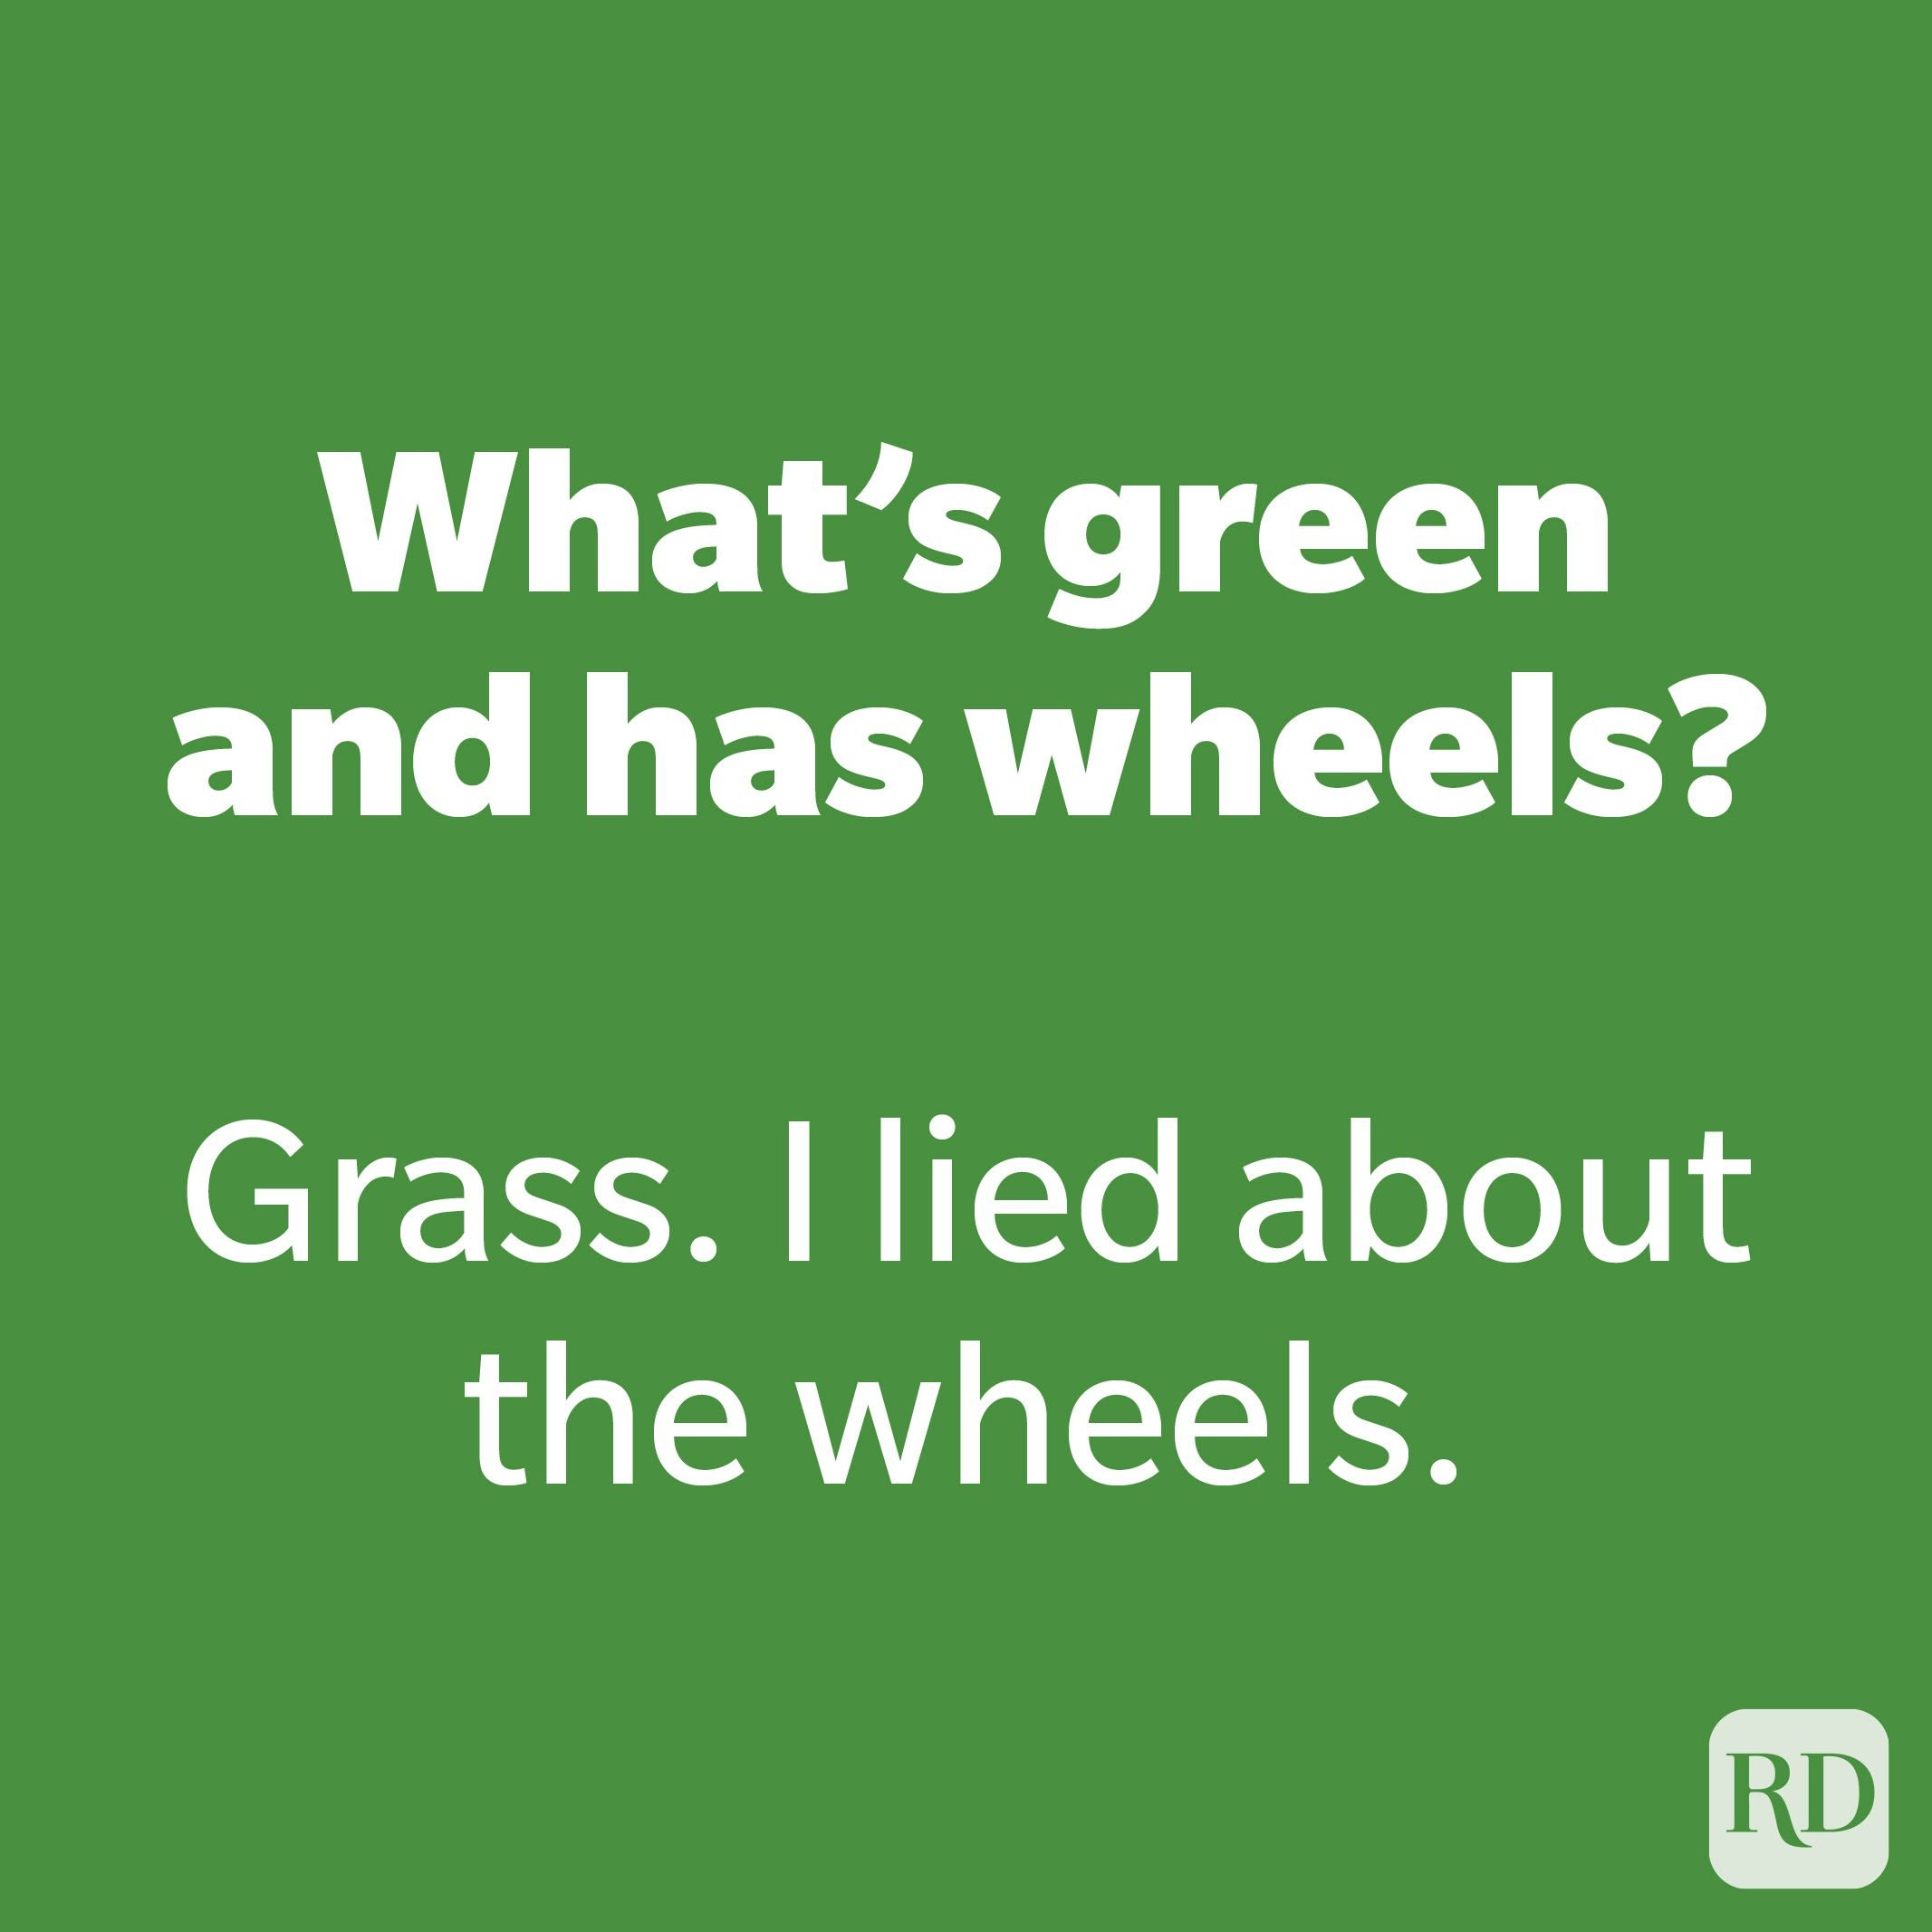 What's green and has wheels?